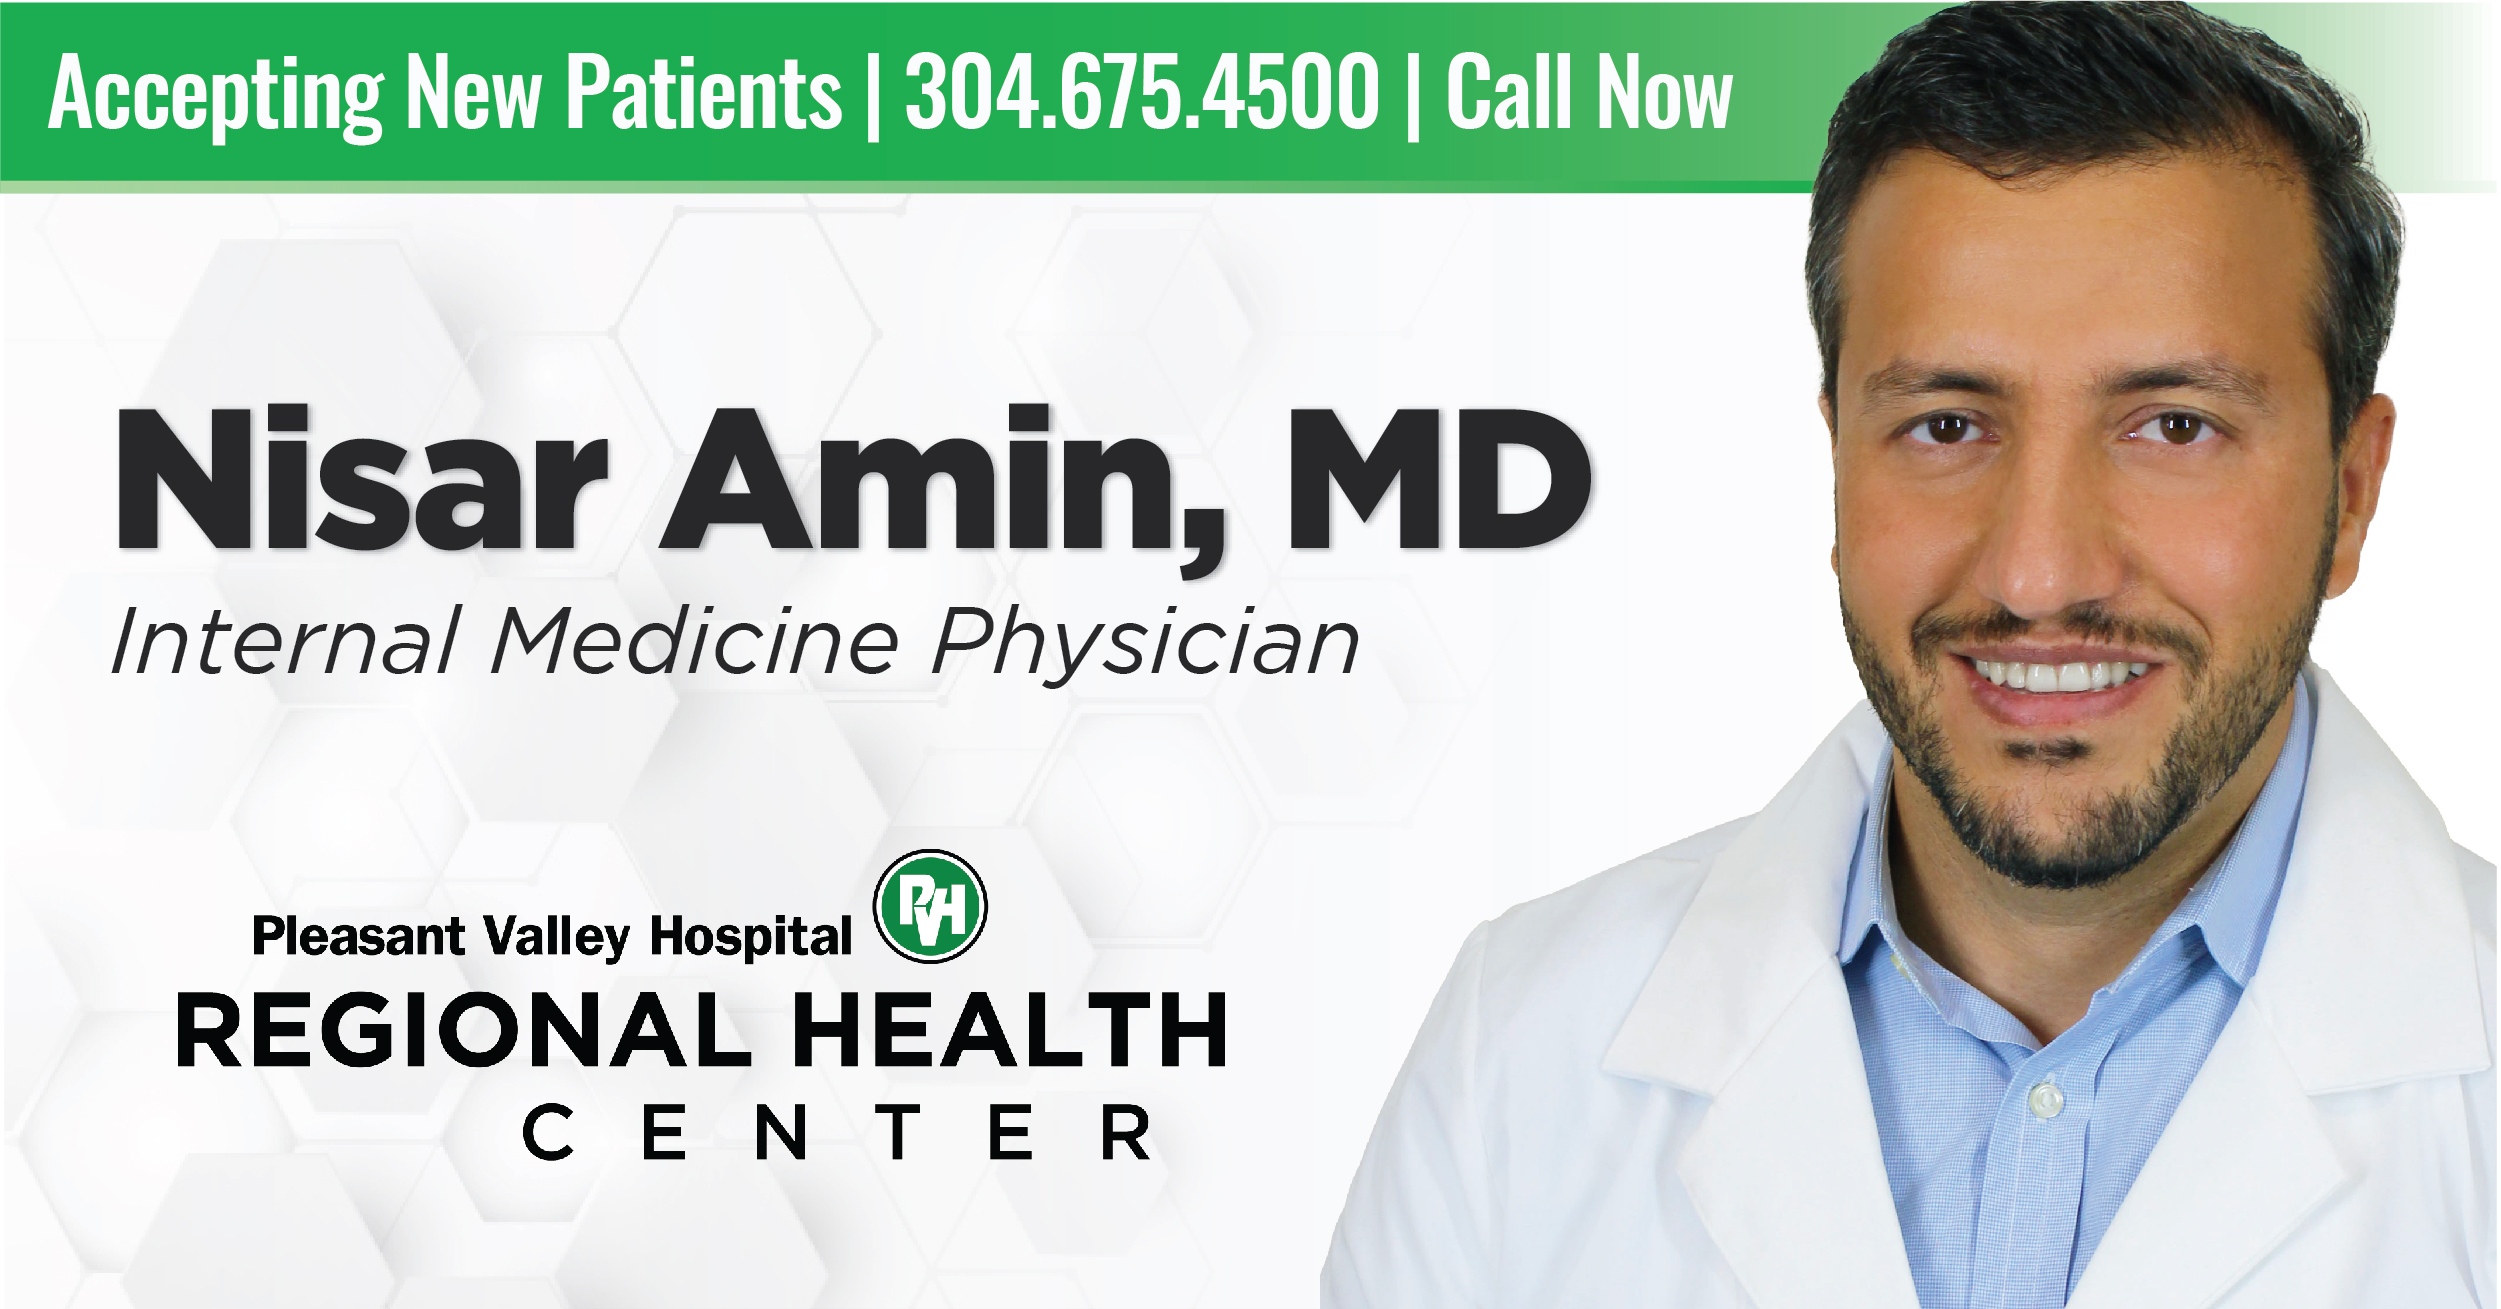 Accepting New Patients | 304.675.4500 | Call Now | Nisar Amin, MD Internal Medicine Physician | Pleasant Valley Hospital Regional Health Center